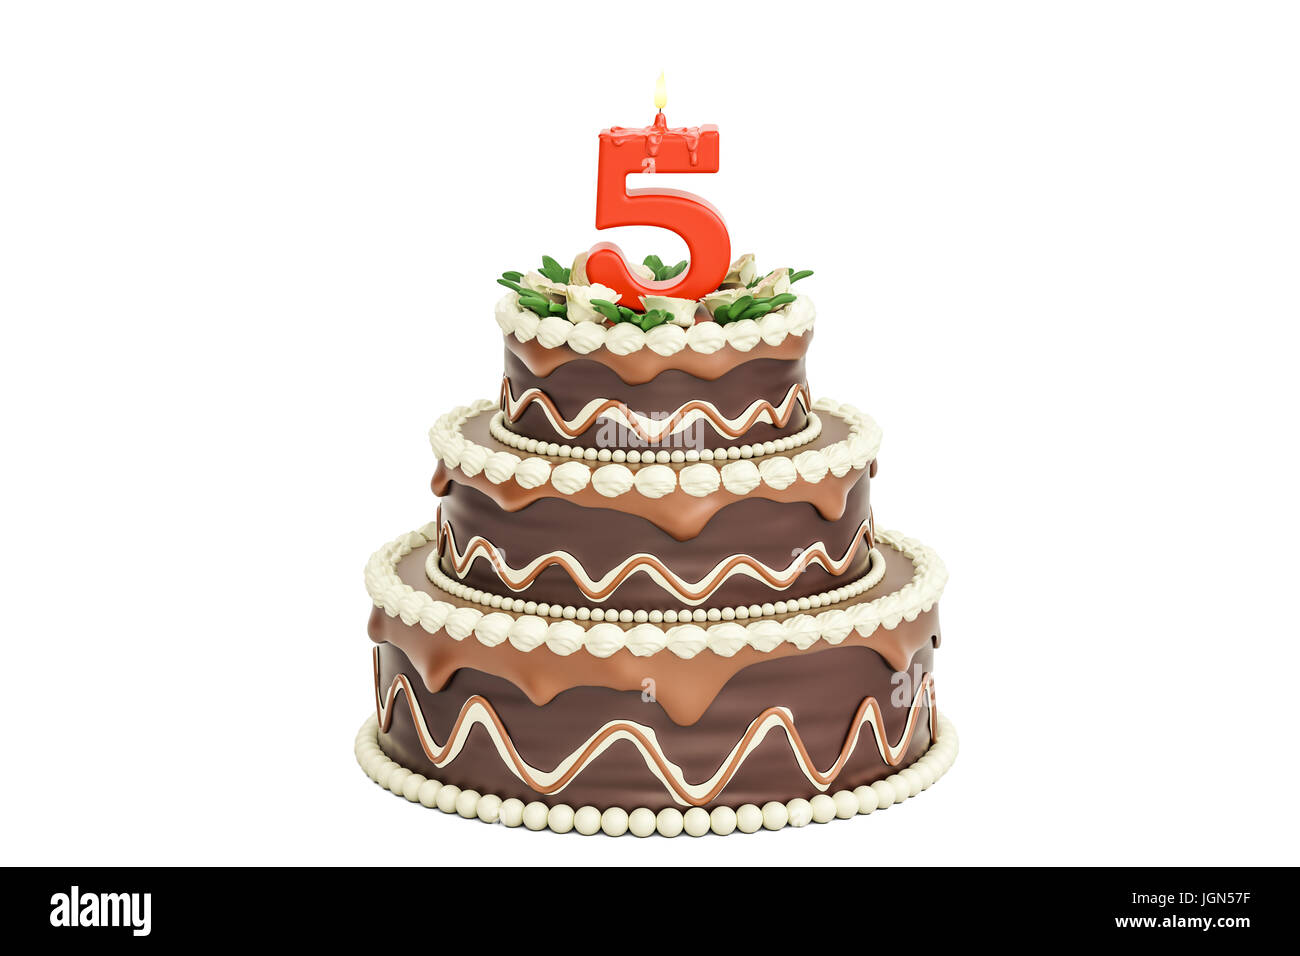 Chocolate Birthday Cake With Candle Number 5 3d Rendering Isolated